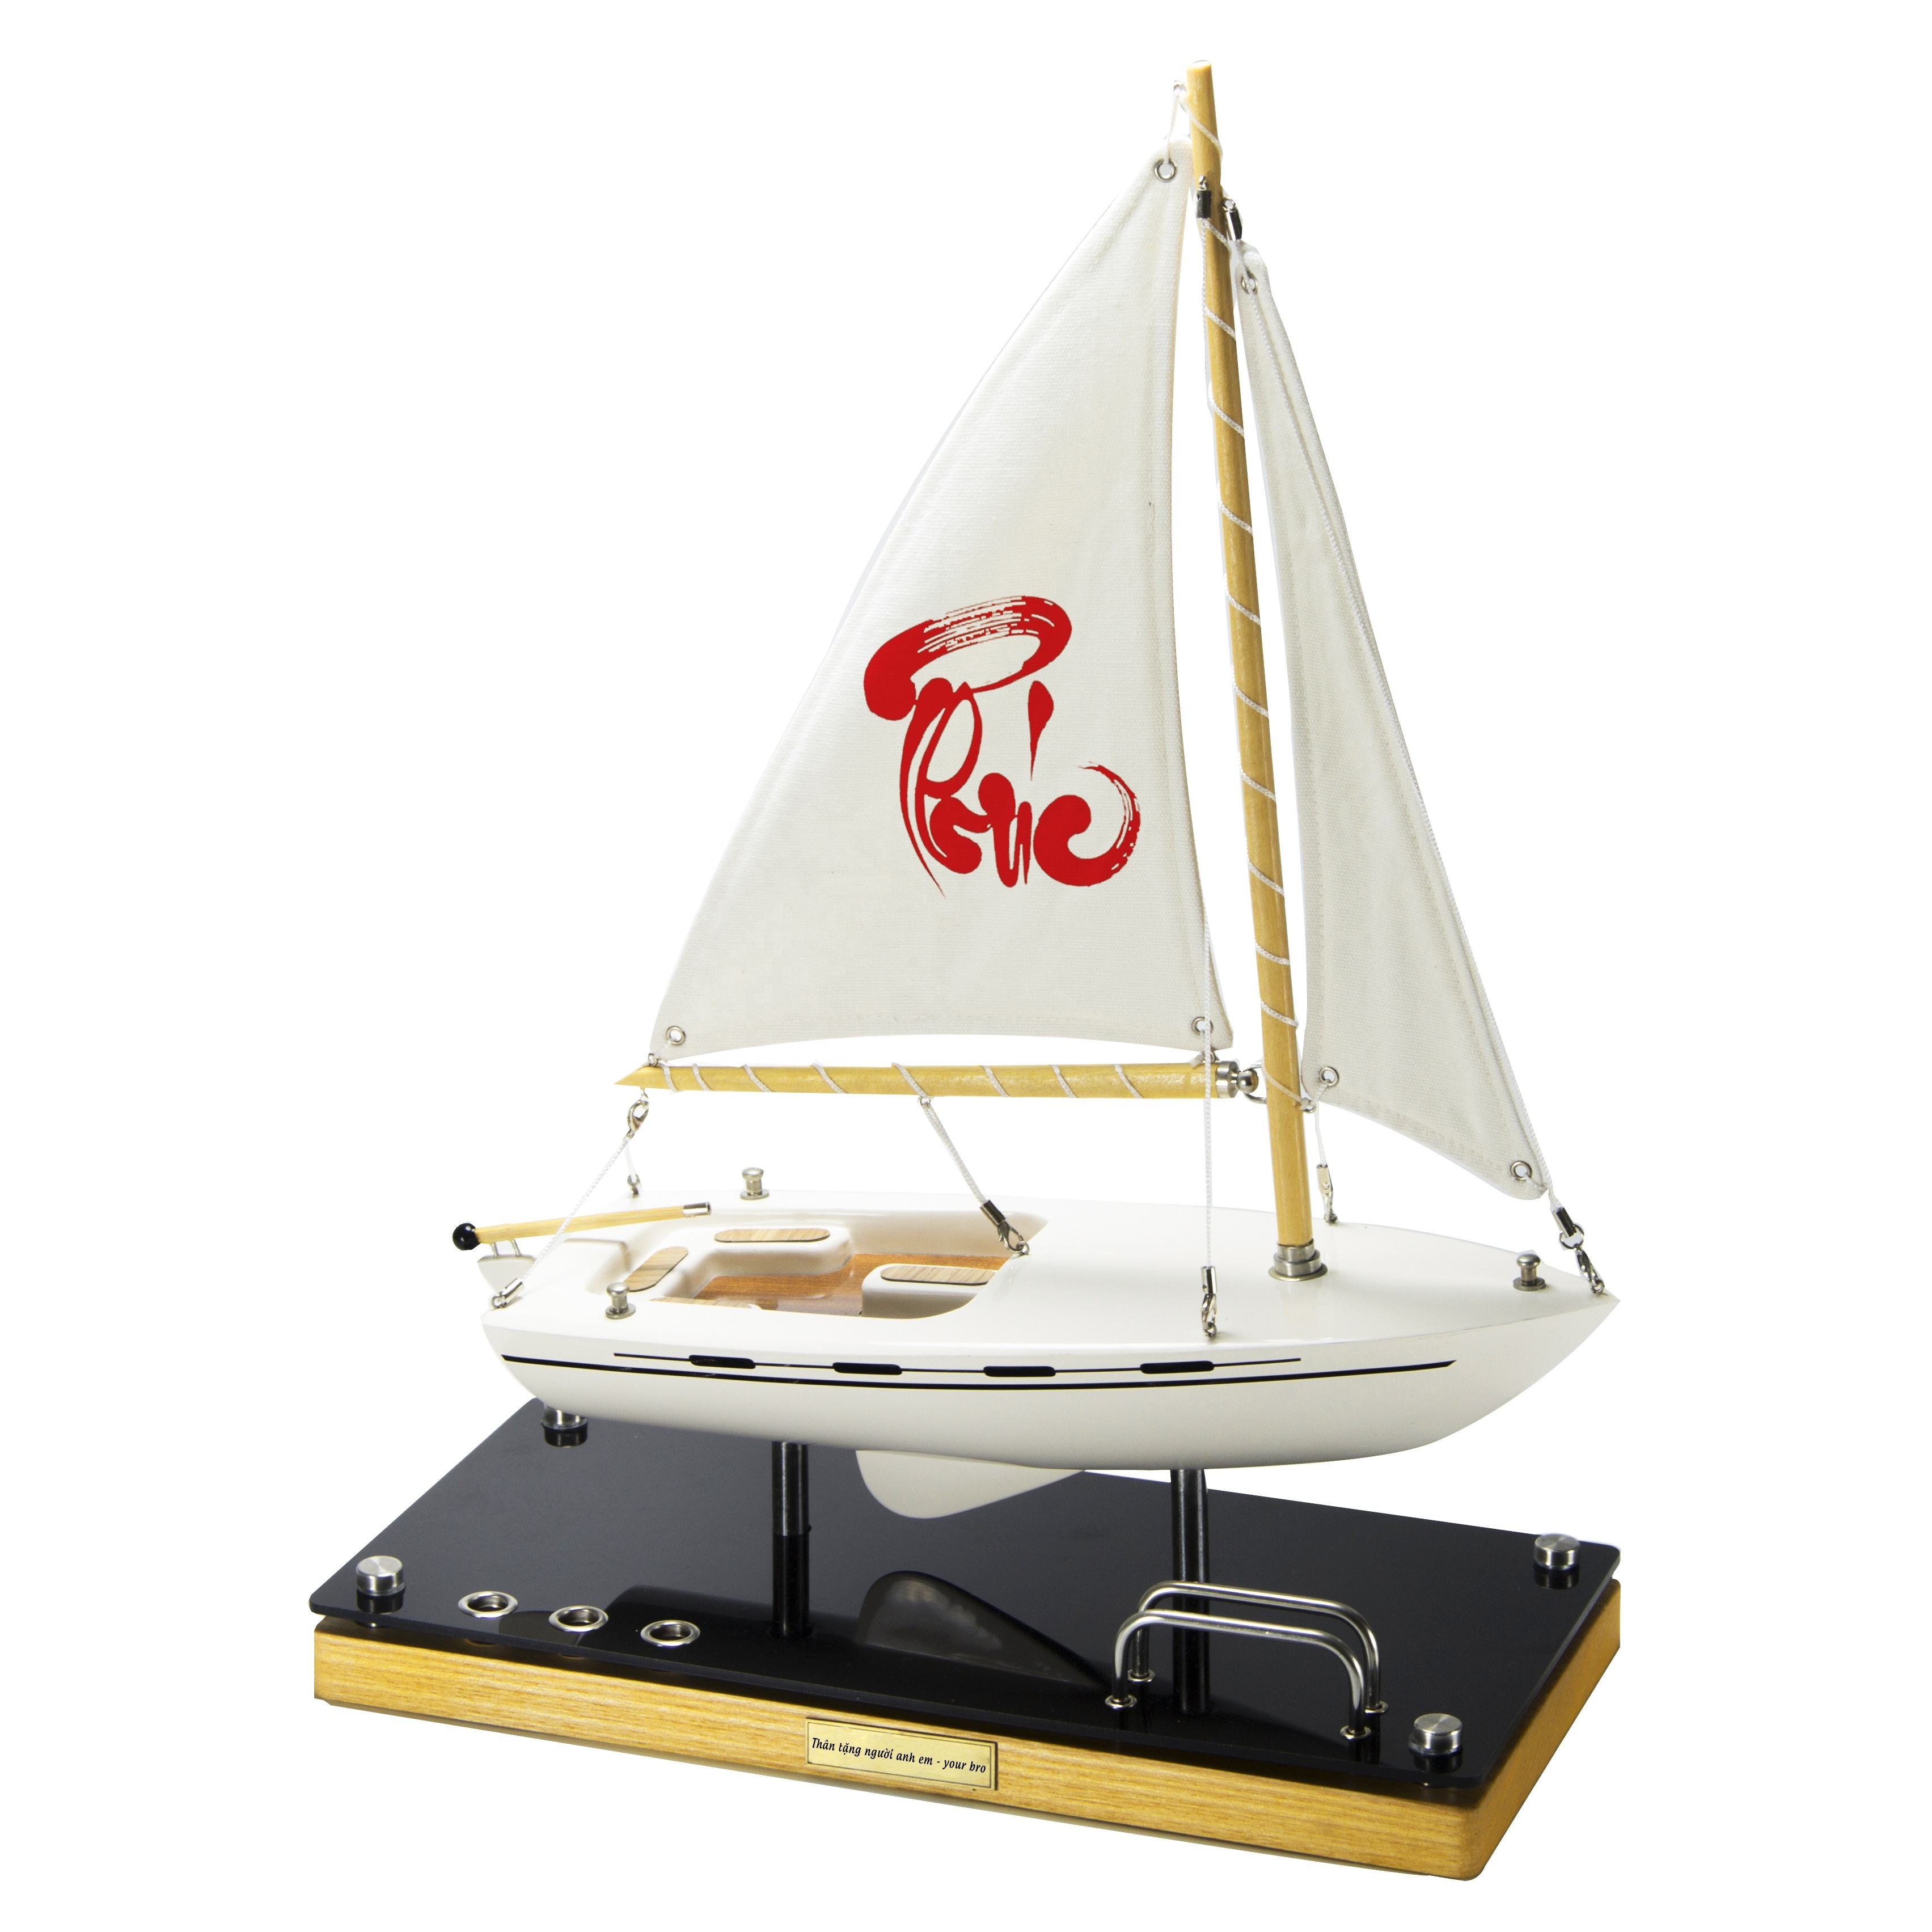 Meaningful business gifts that bring good luck are made from composite and precious woods boat model with wholesale